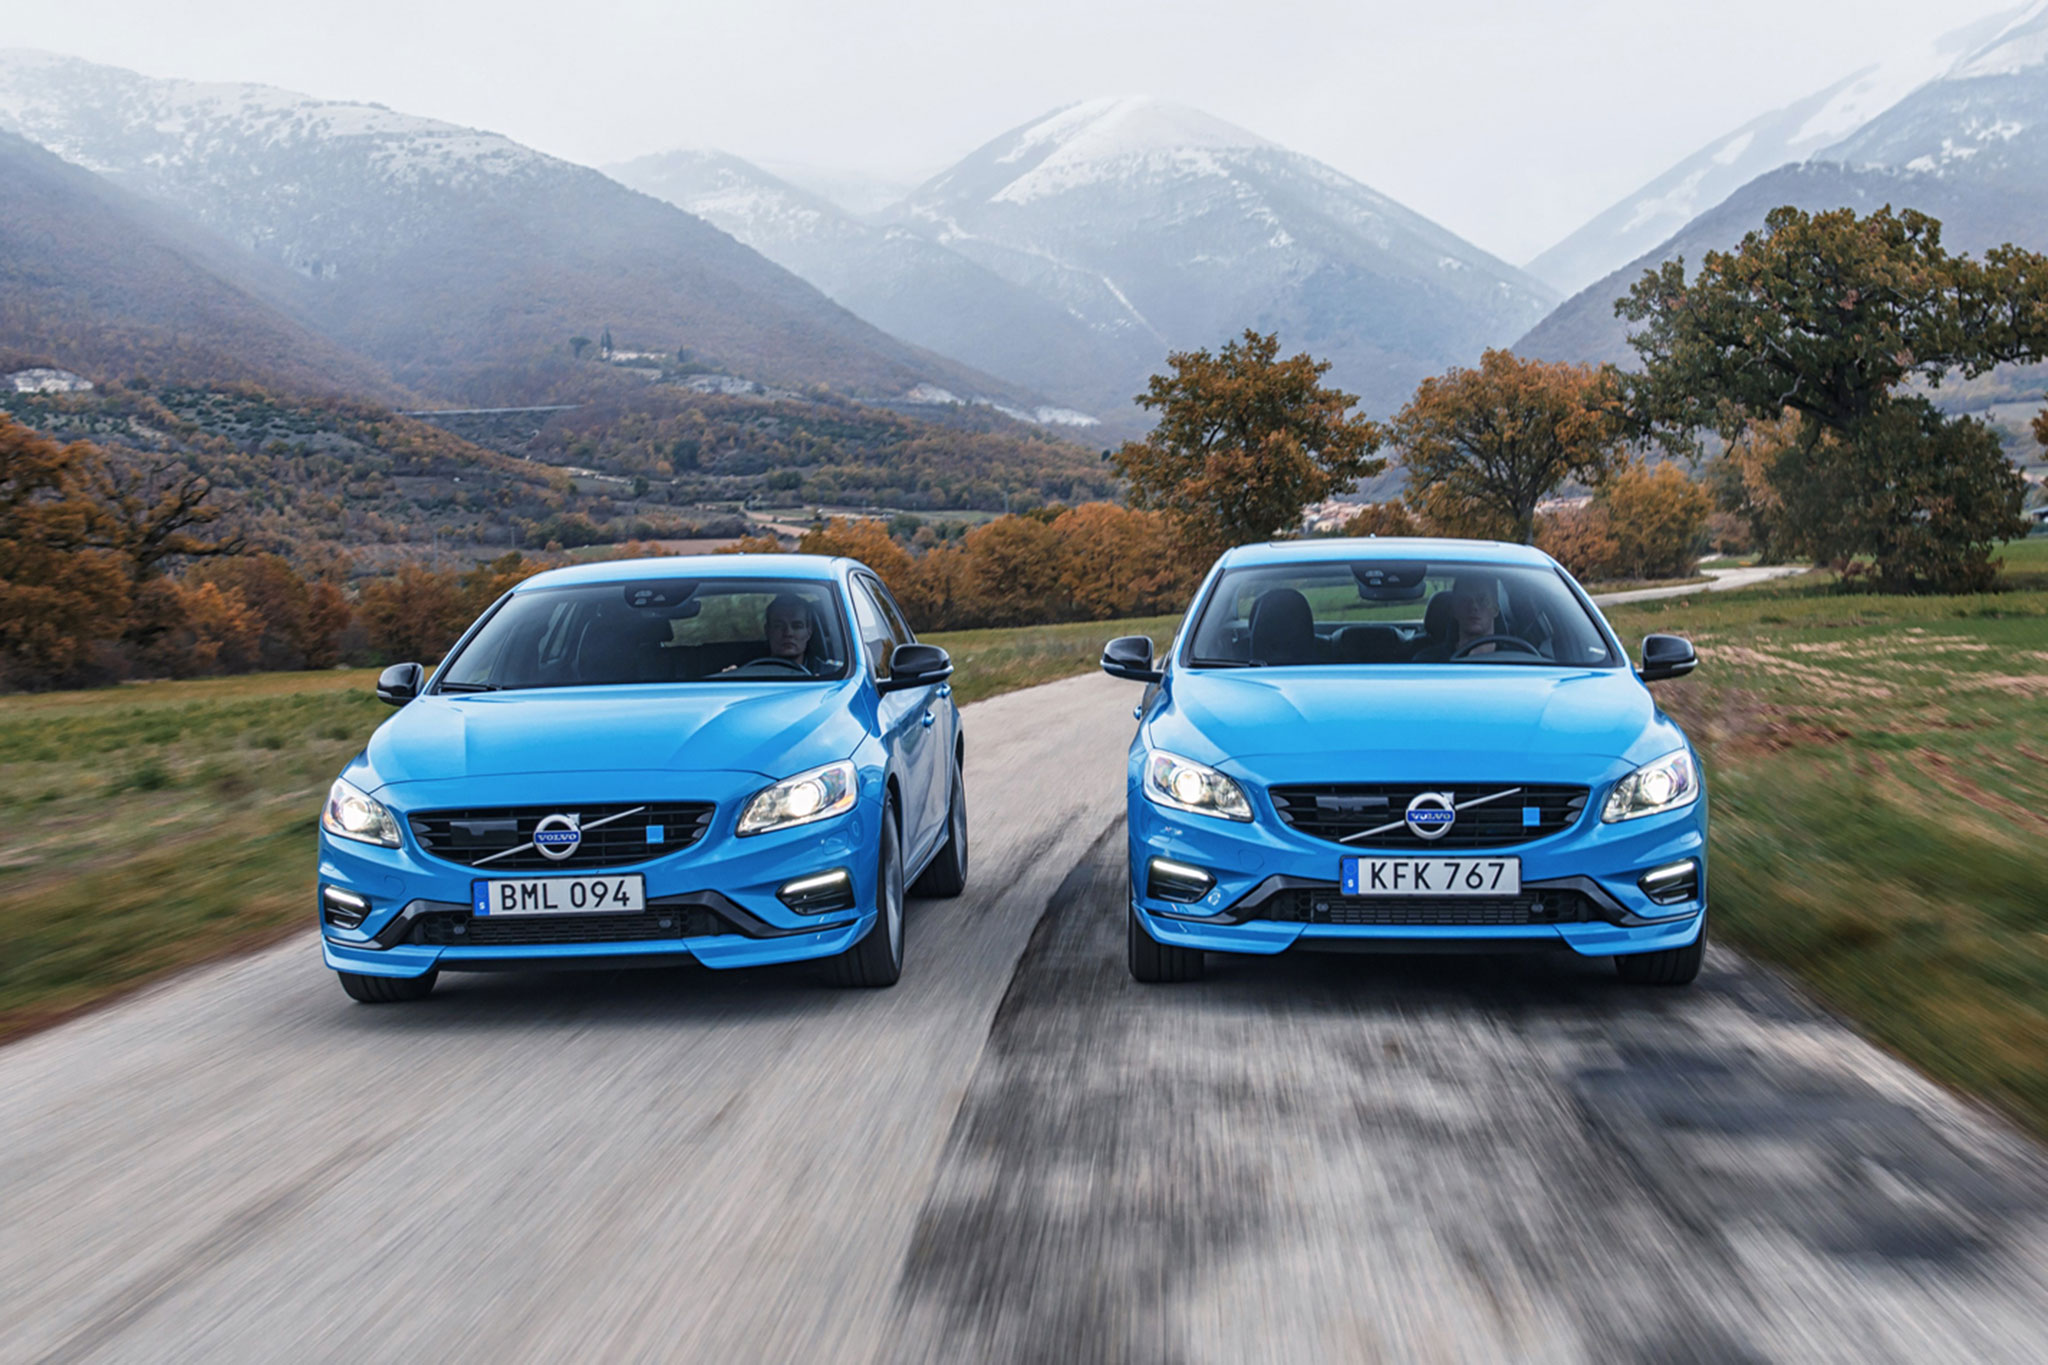 2017 volvo v60 and s60 polestar first drive review. Black Bedroom Furniture Sets. Home Design Ideas